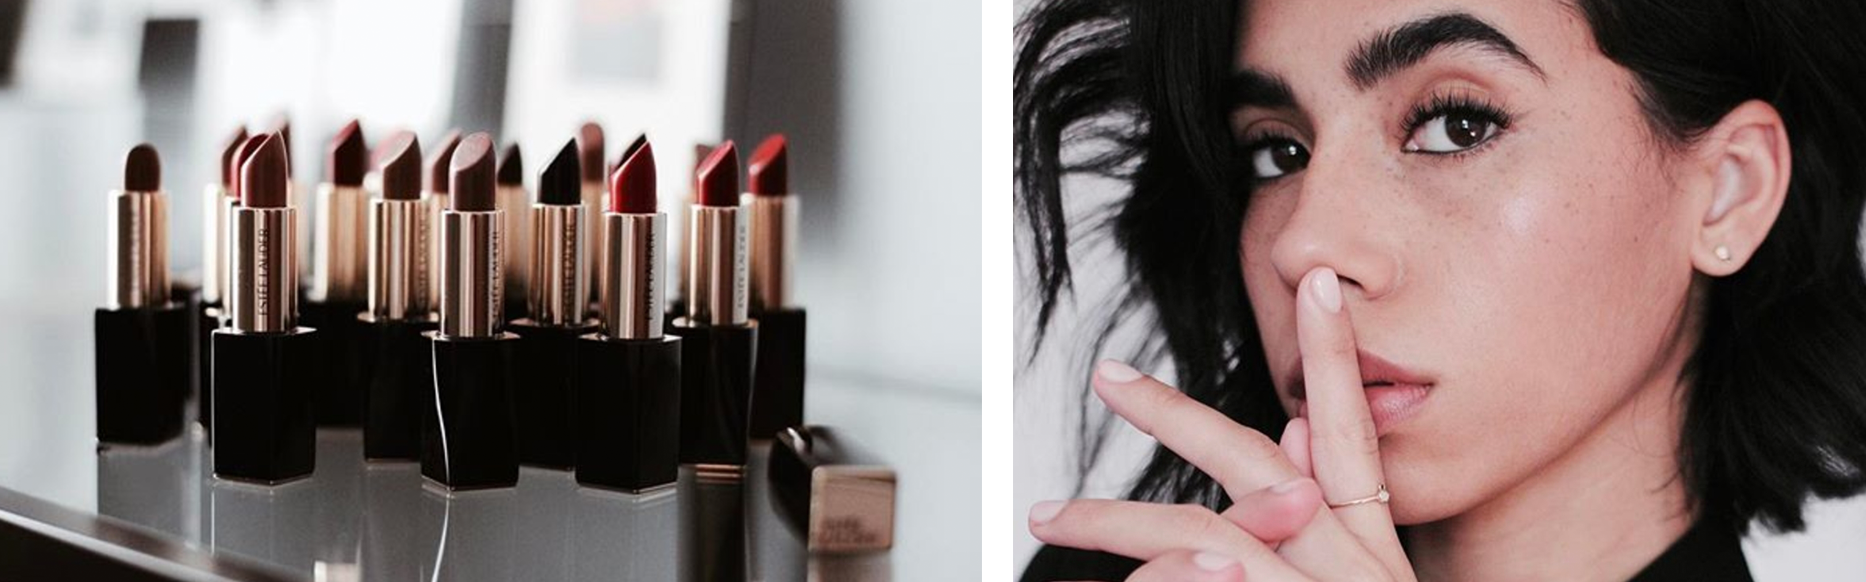 5 IG's to Follow for Makeup Inspiration - Planoly Blog - Tamira Jarrel